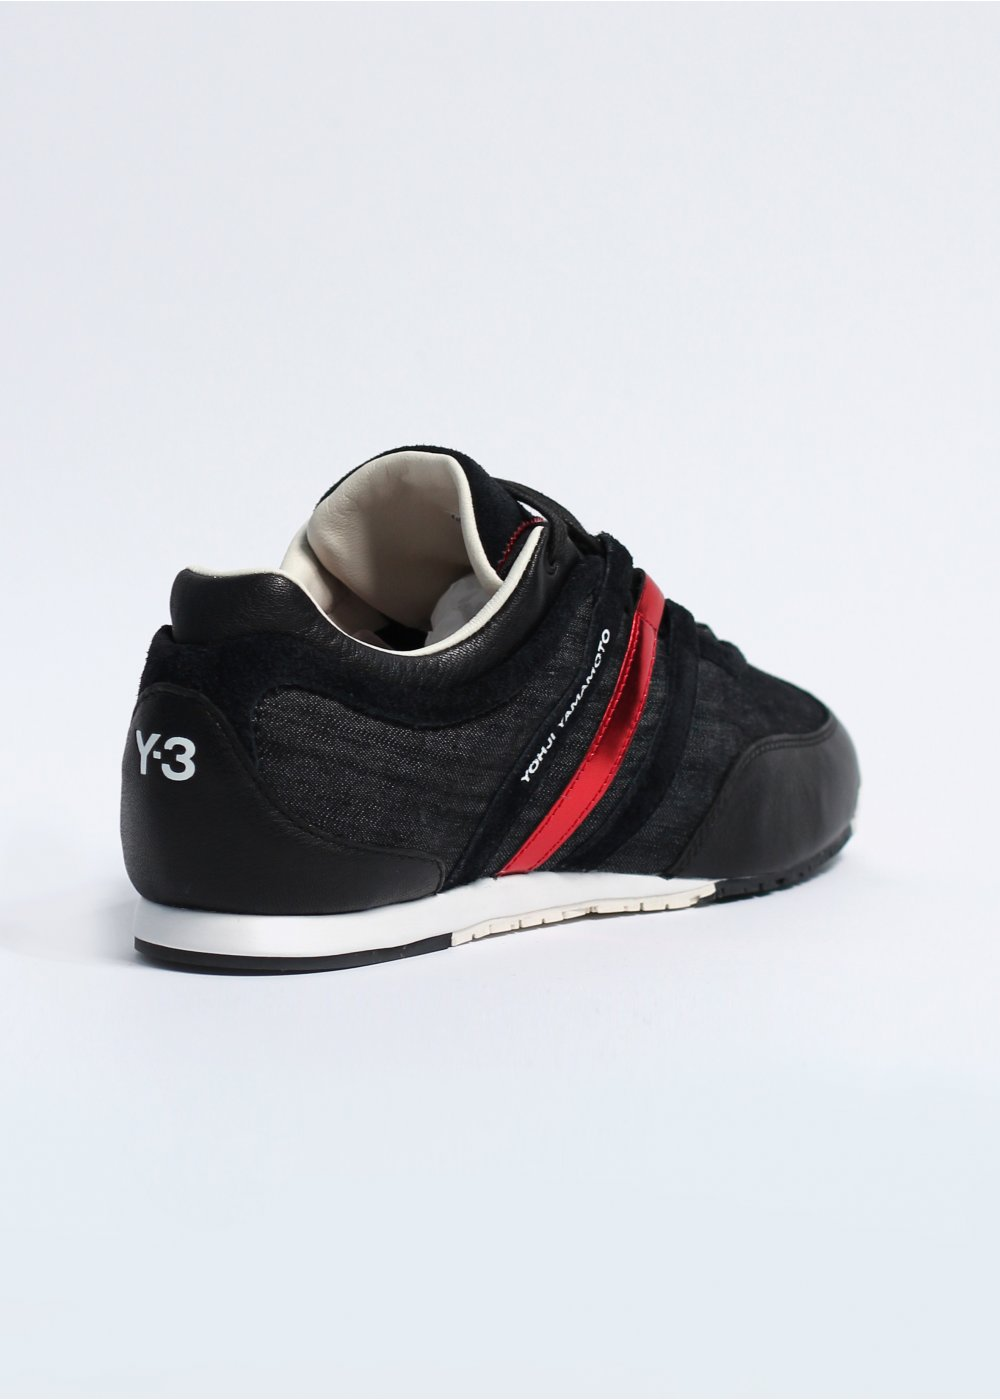 3fb7fec449cf adidas Y-3 Boxing Denim Trainers - Black   Running White